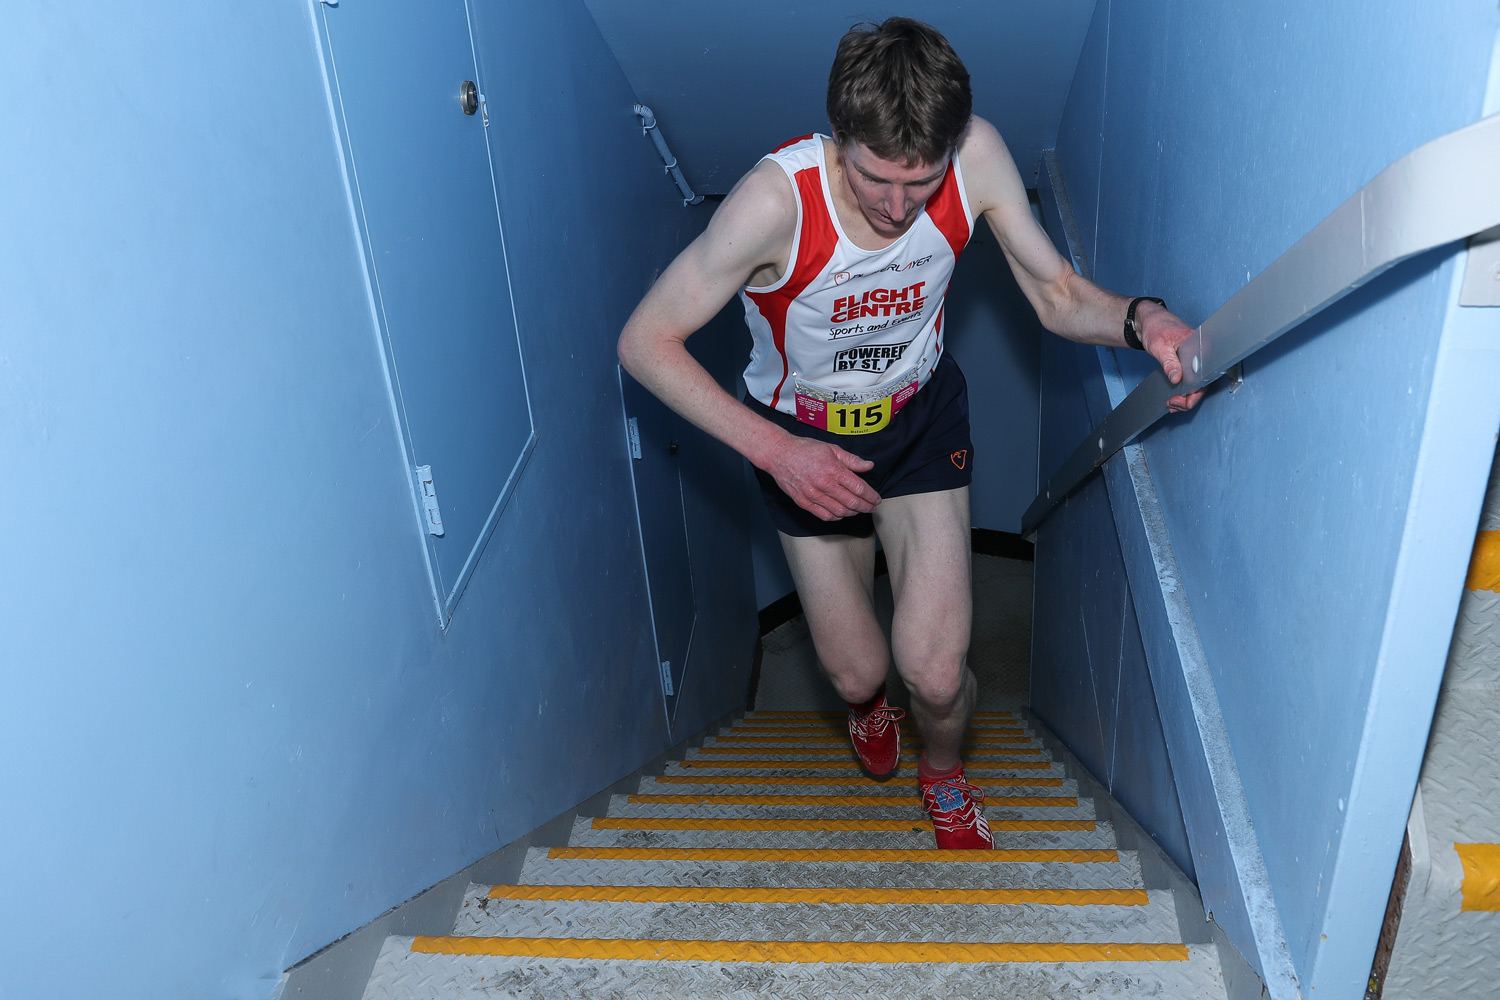 Mark Bourne on his way to victory at Sydney Tower Stair Challenge.